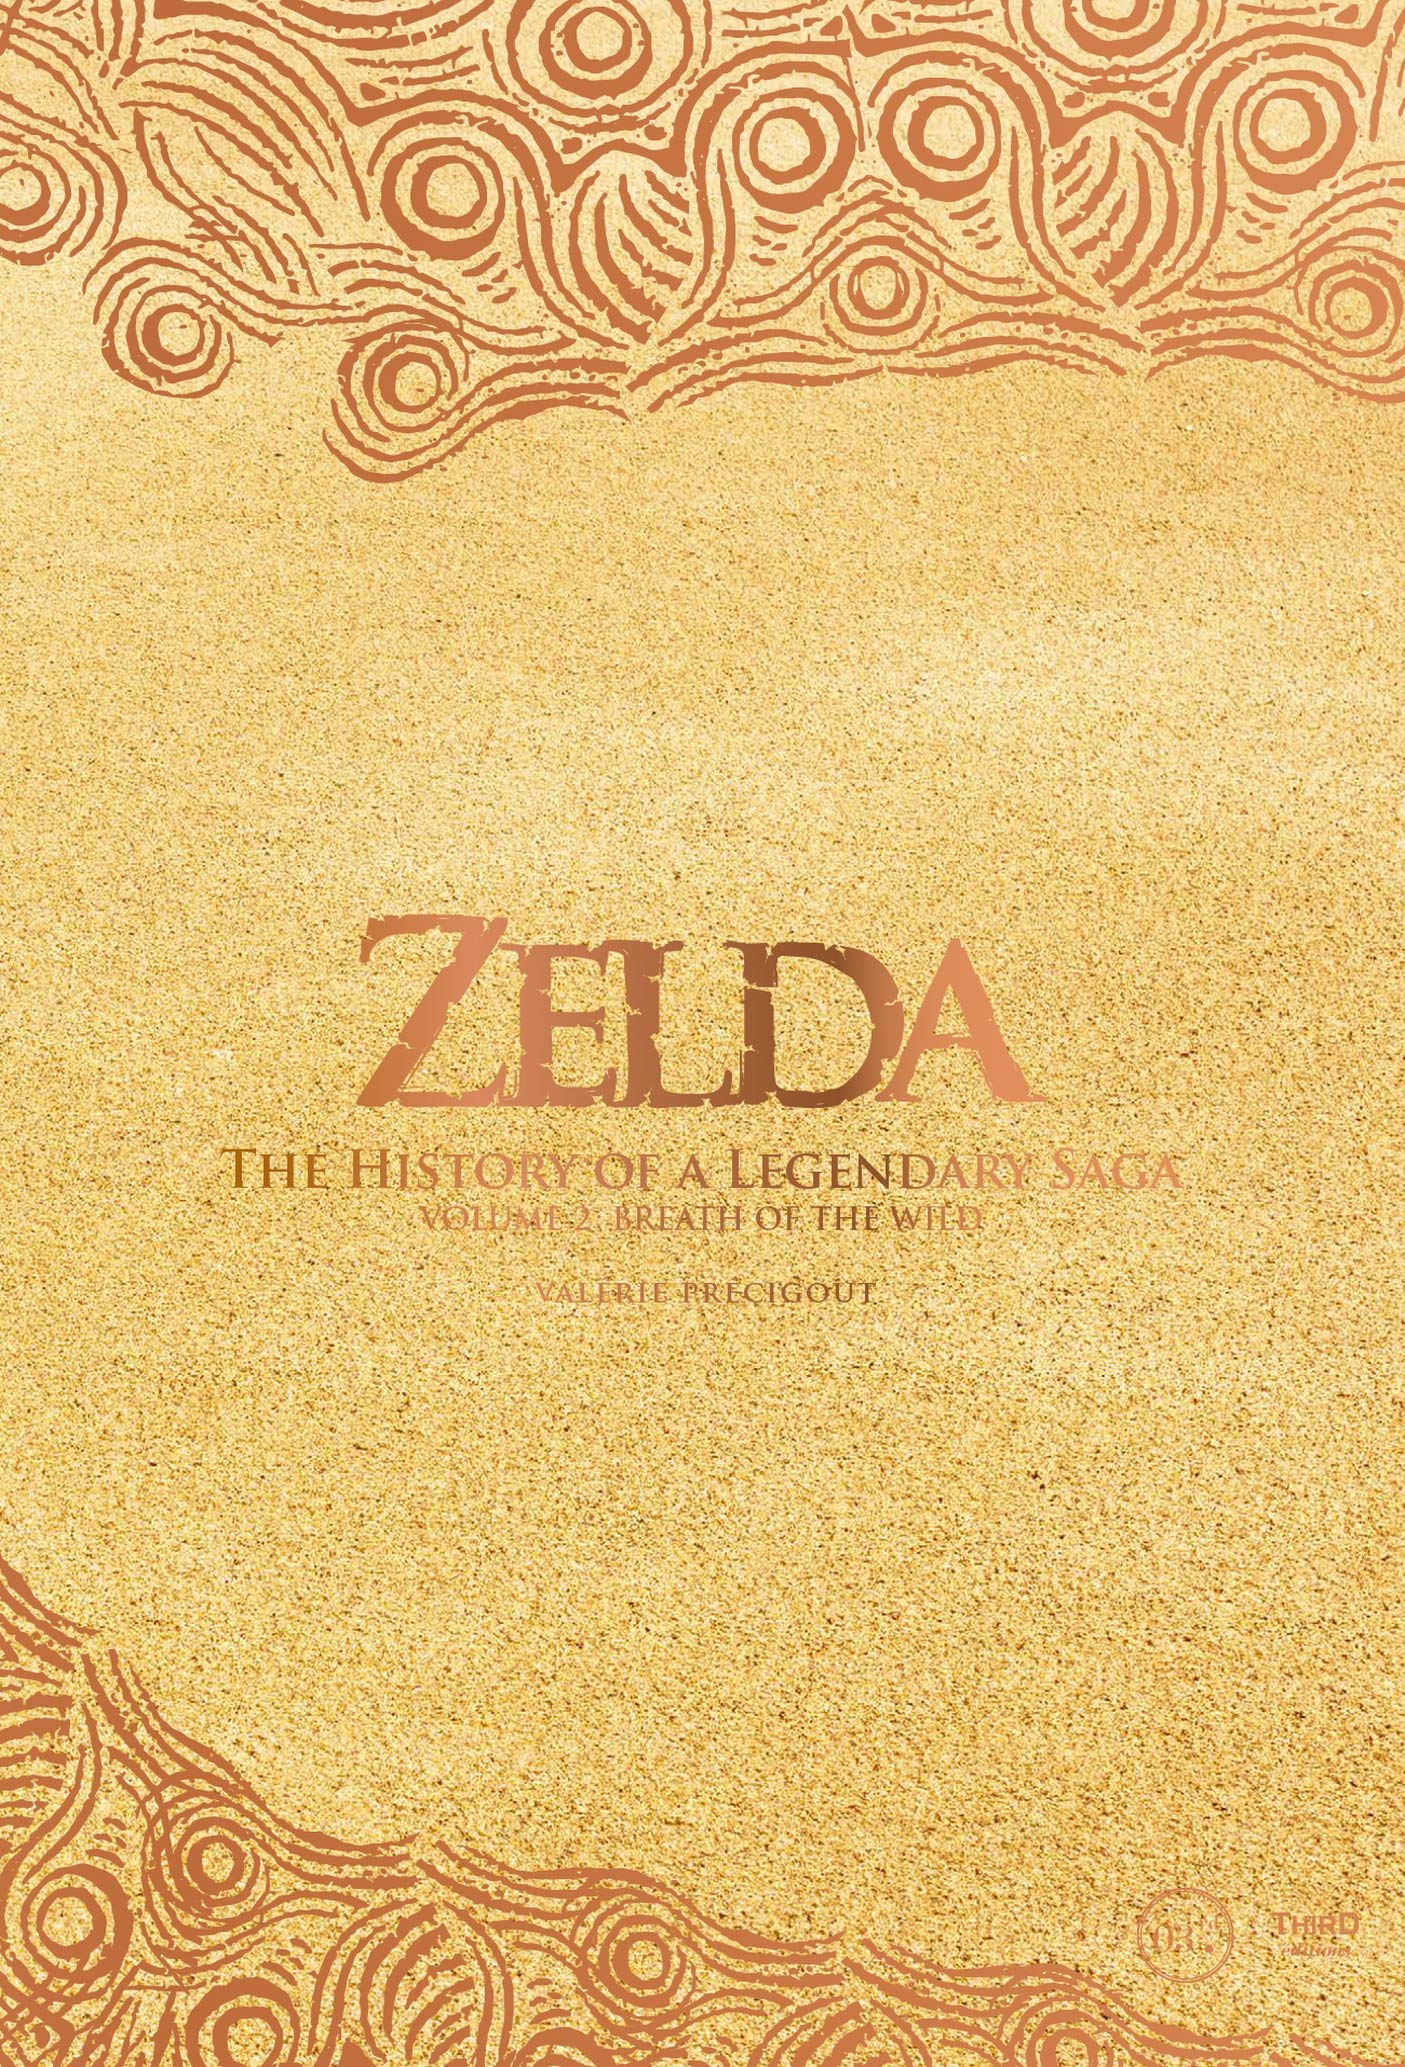 Image OfThe Legend Of Zelda. The History Of A Legendary Saga Vol. 2: Breath Of The Wild (English Edition)